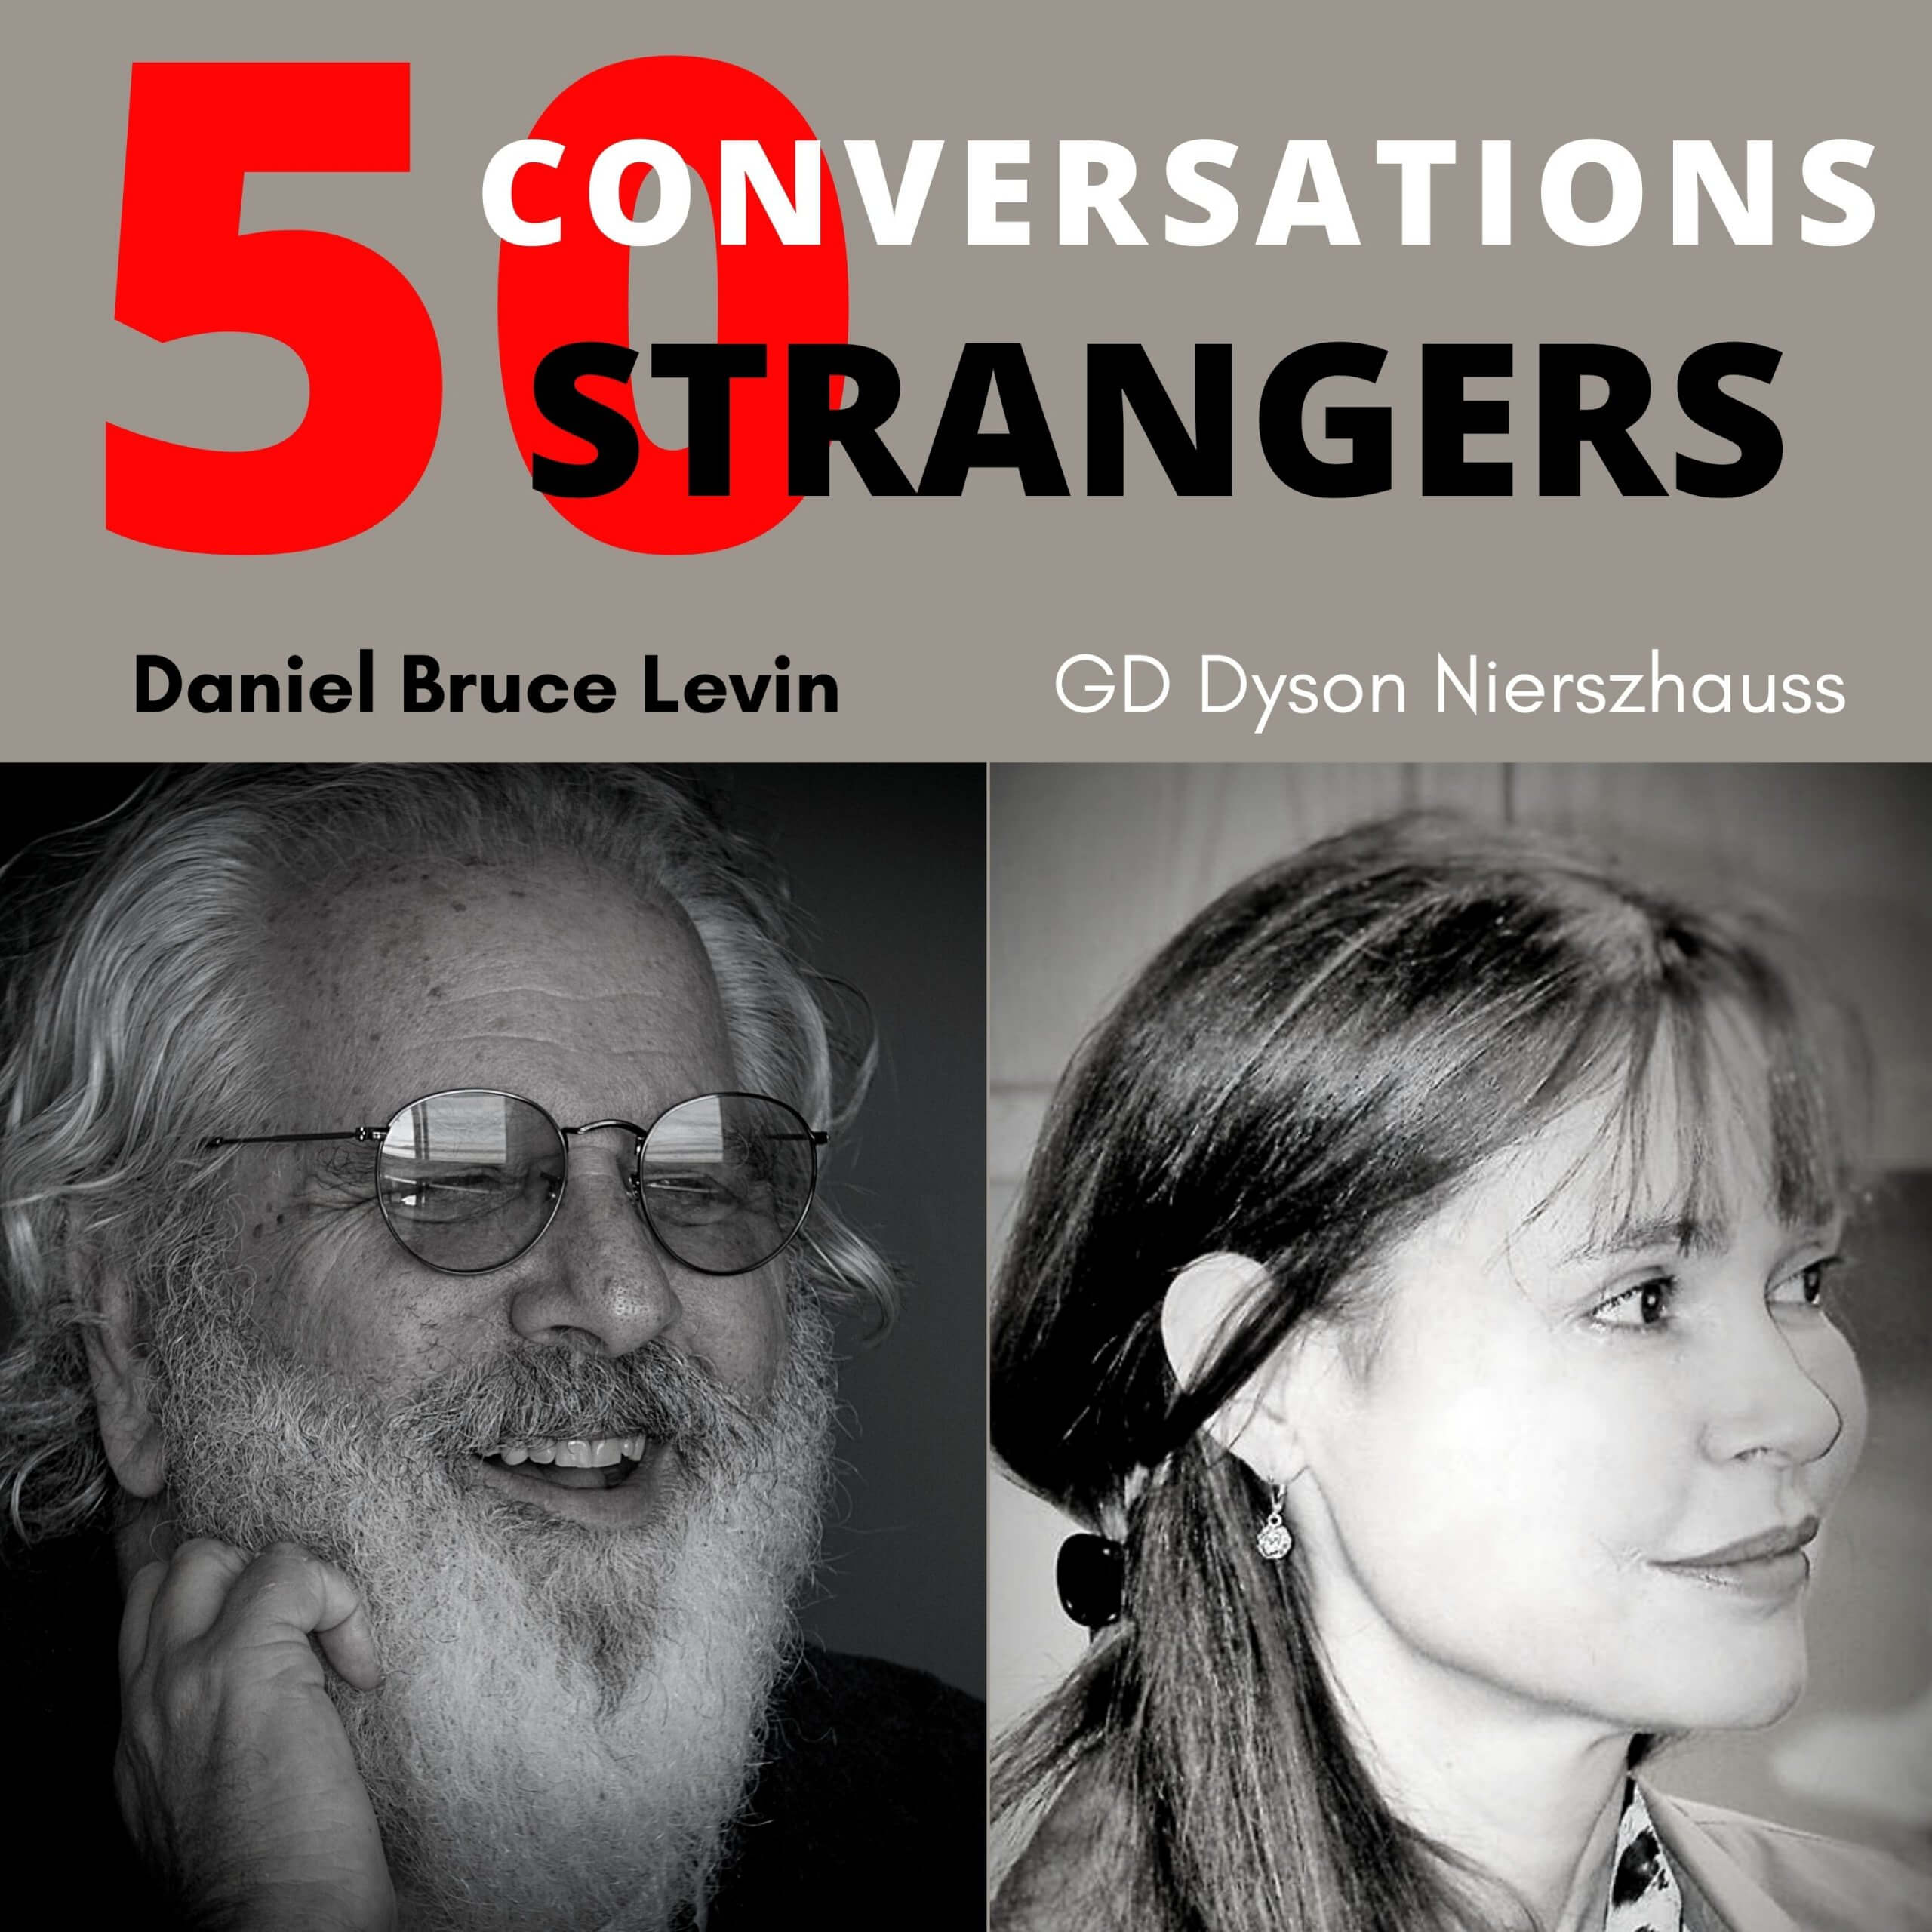 50 Conversations with 50 Strangers with Guaddie Wady Dyson Nierszhauss